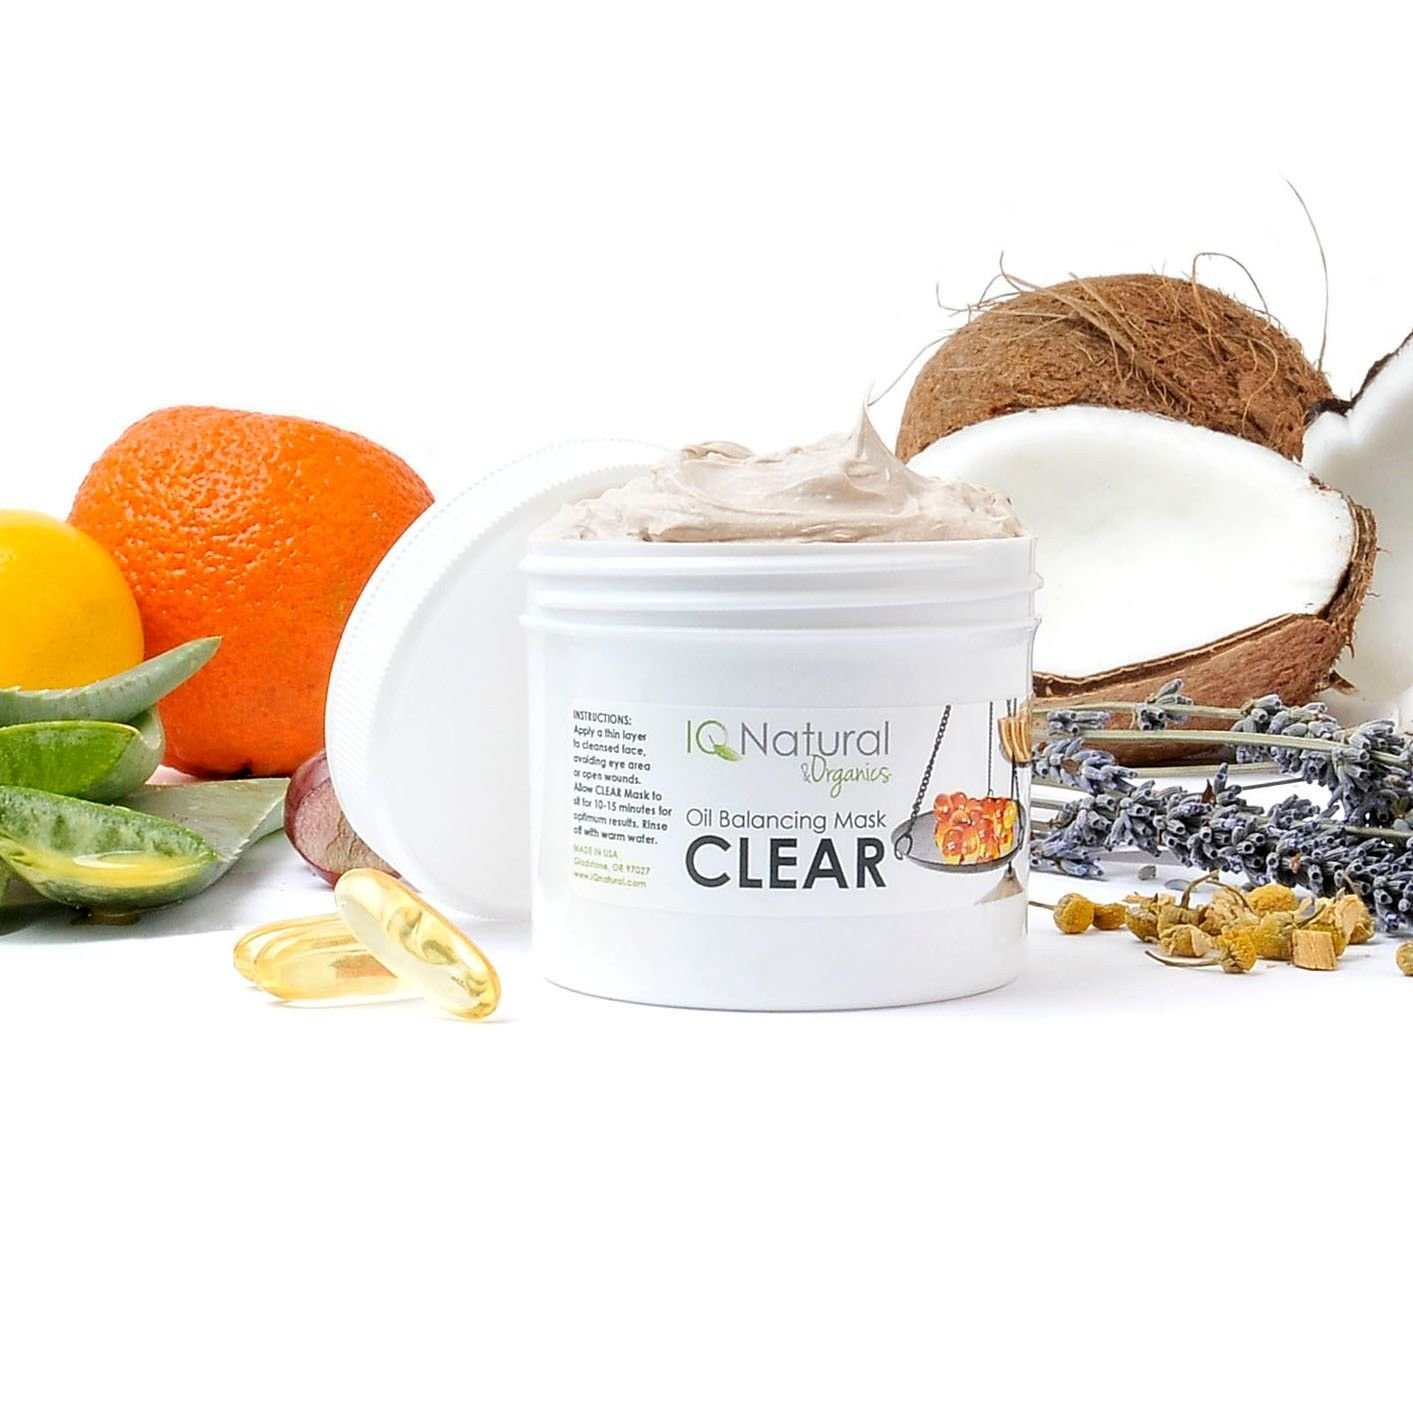 CLEAR Acne Blemish Clarifying Facial Mask with Salycilic Acid MSM Vitamin C(2oz)